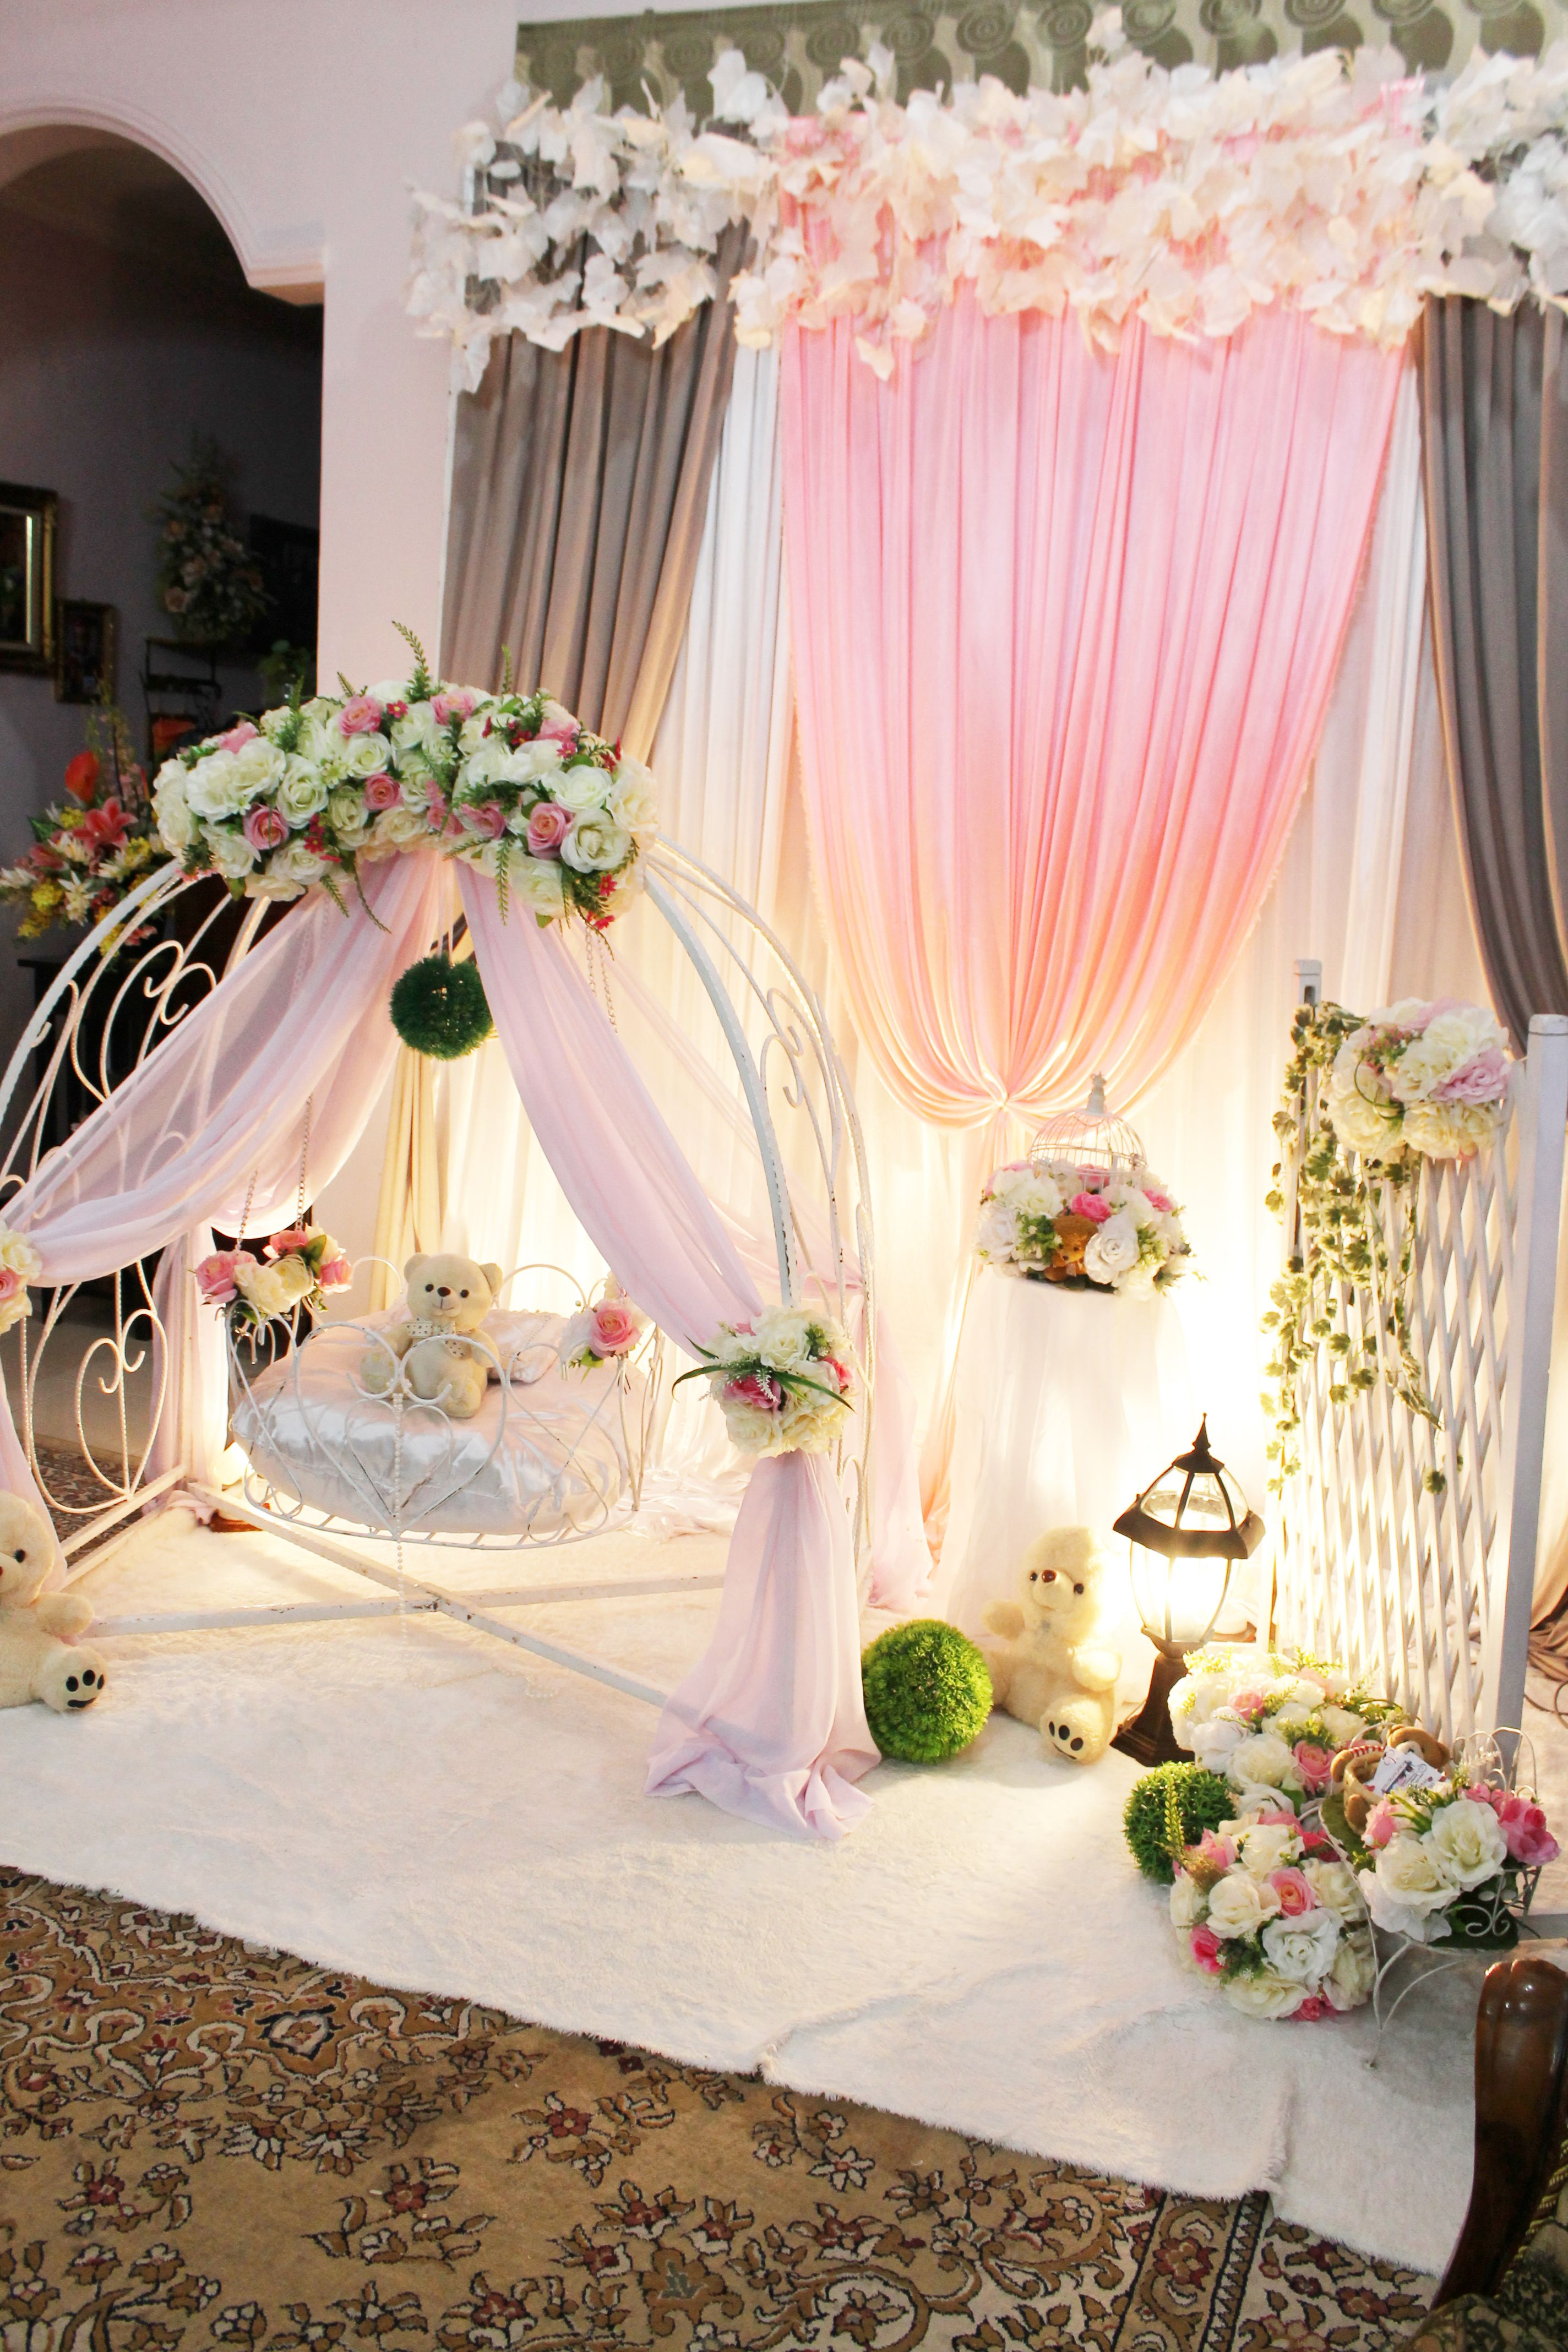 Decoration baby cradle for naming ceremony pelamin buaian for Baby full month decoration ideas